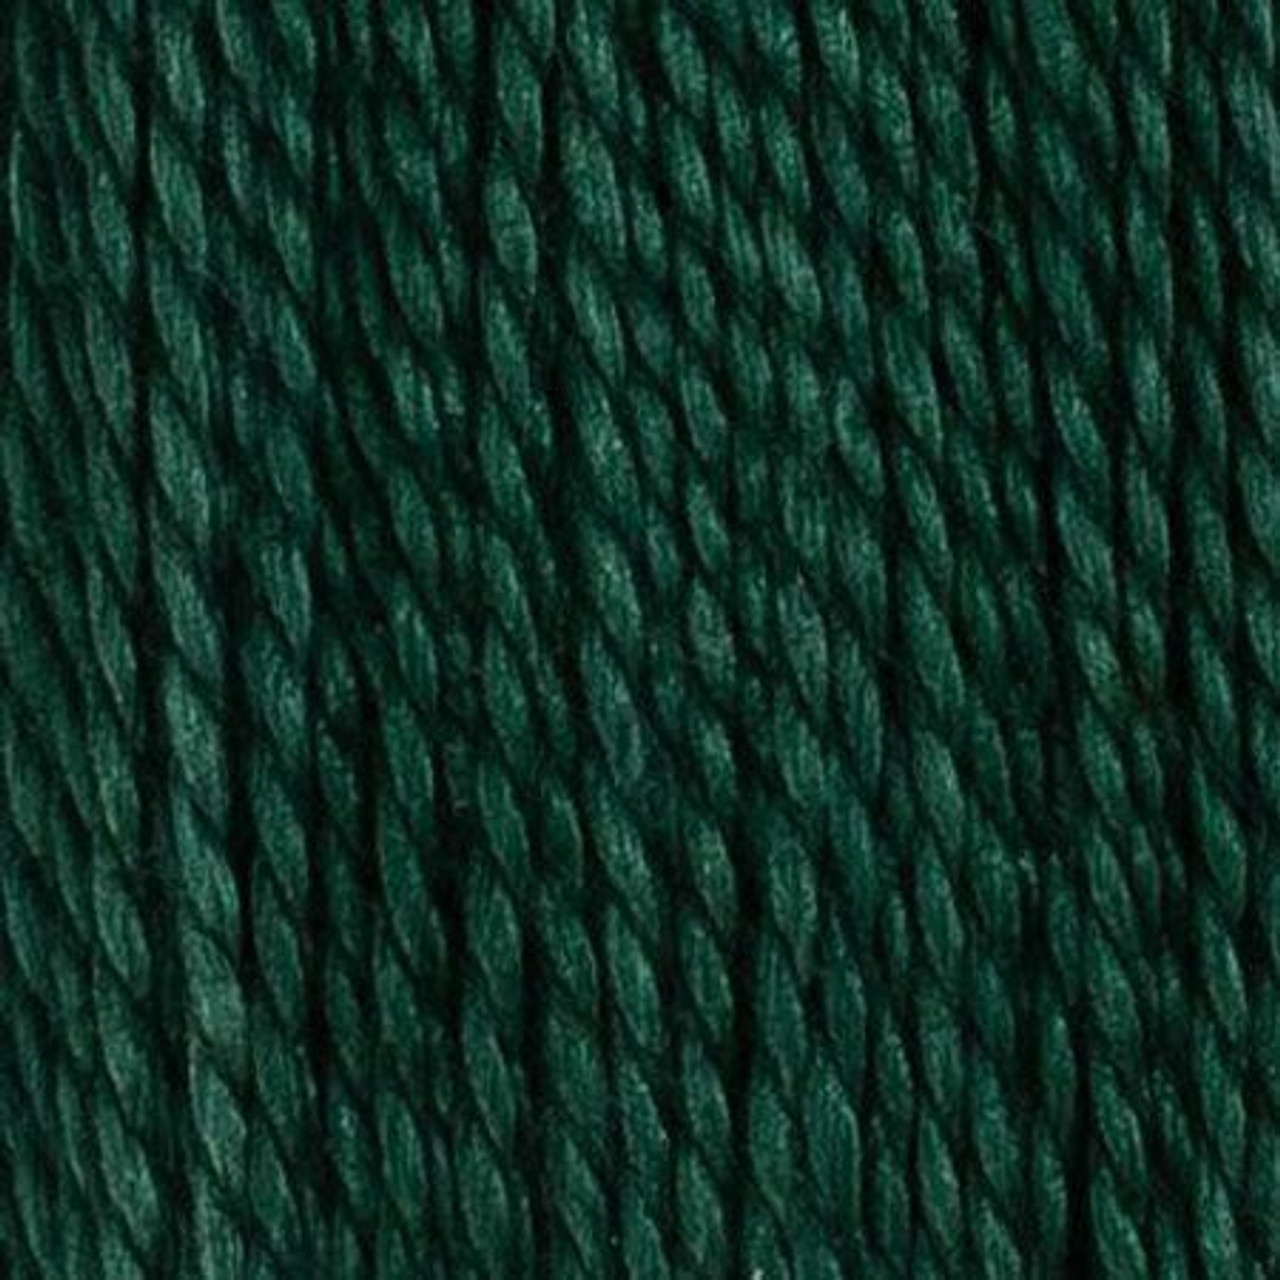 House of Embroidery : 8wt Perle Cotton - Mexico (53B)